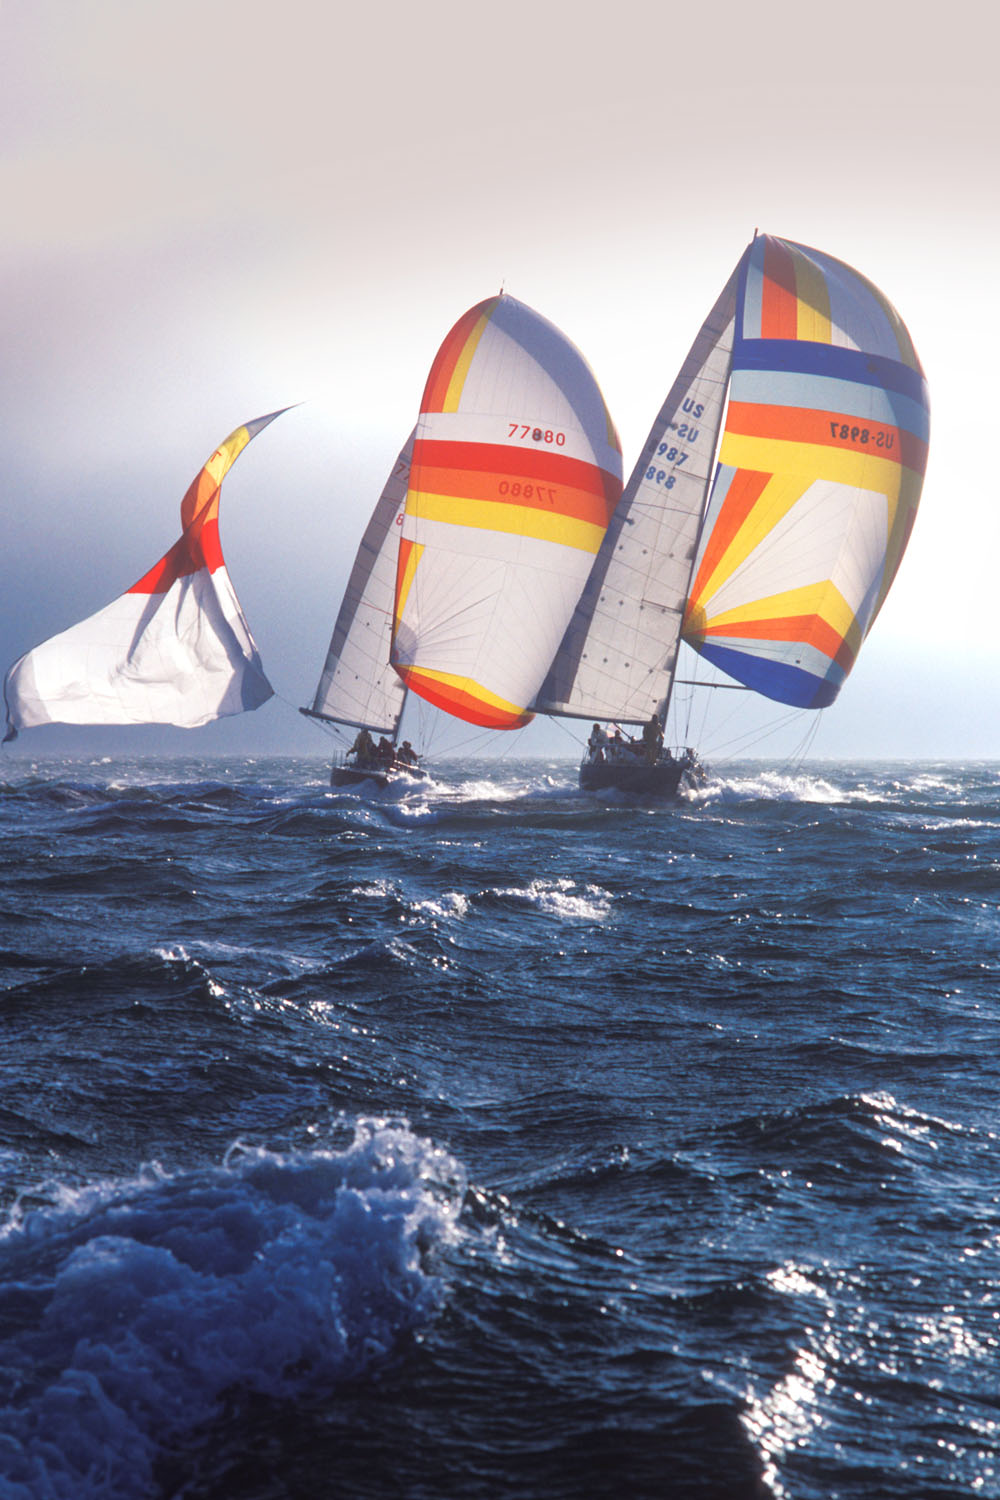 Backlit sailboats racing